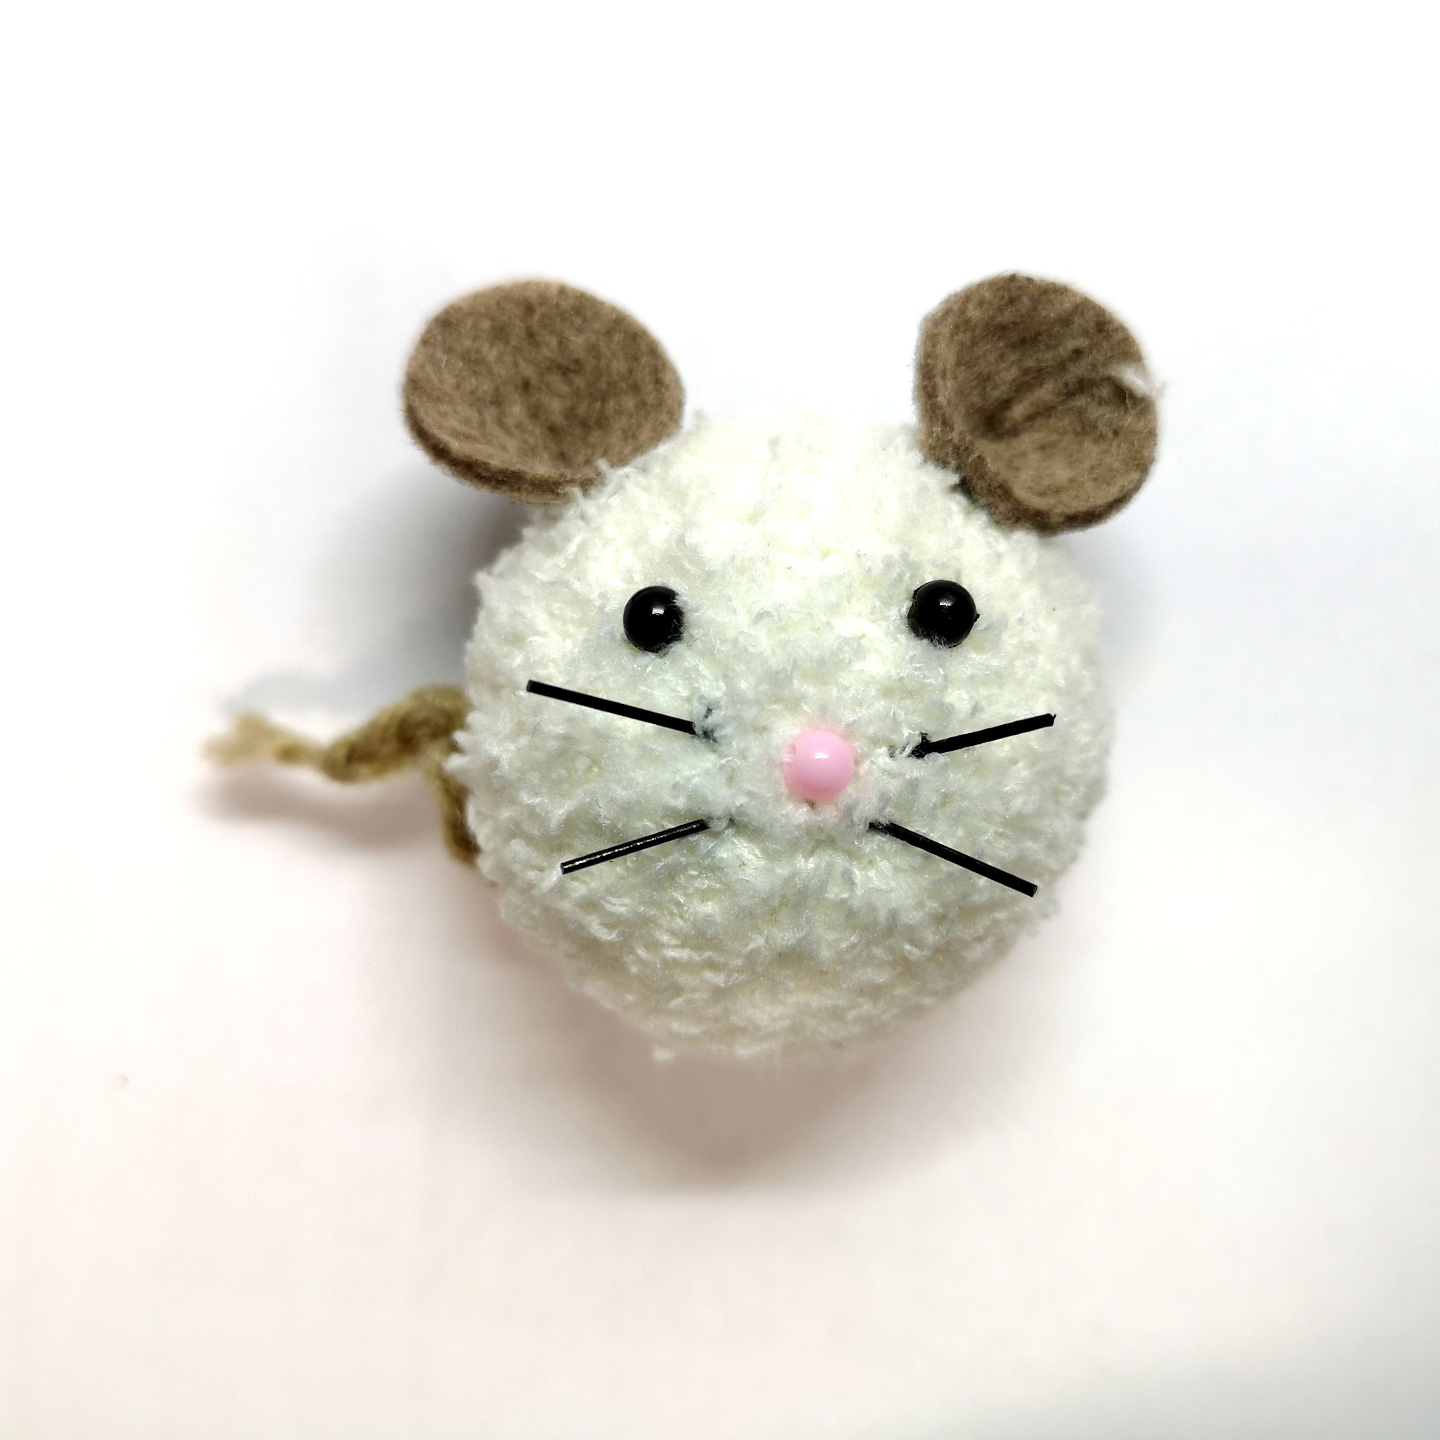 Handmade Brooch: Mouse Brooch by Doe & Audrey